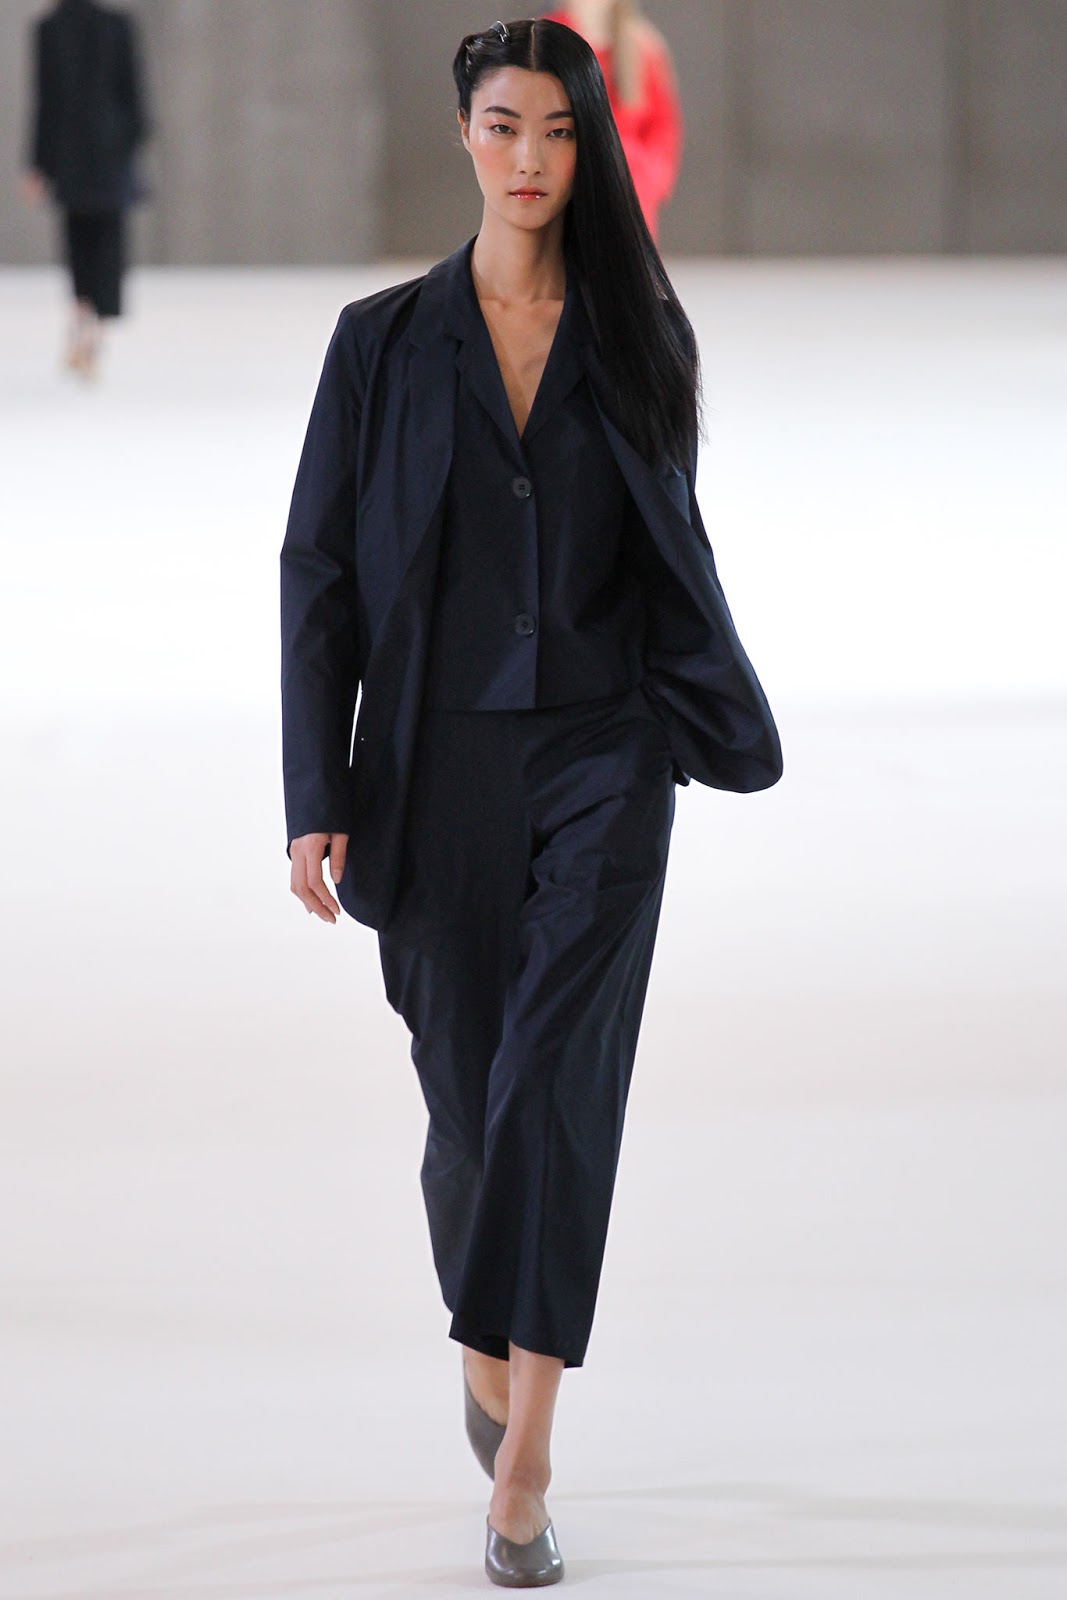 Christophe Lemaire / Spring/Summer 2015 trends / trouser suit / styling tips and outfit inspiration / via fashioned by love british fashion blog